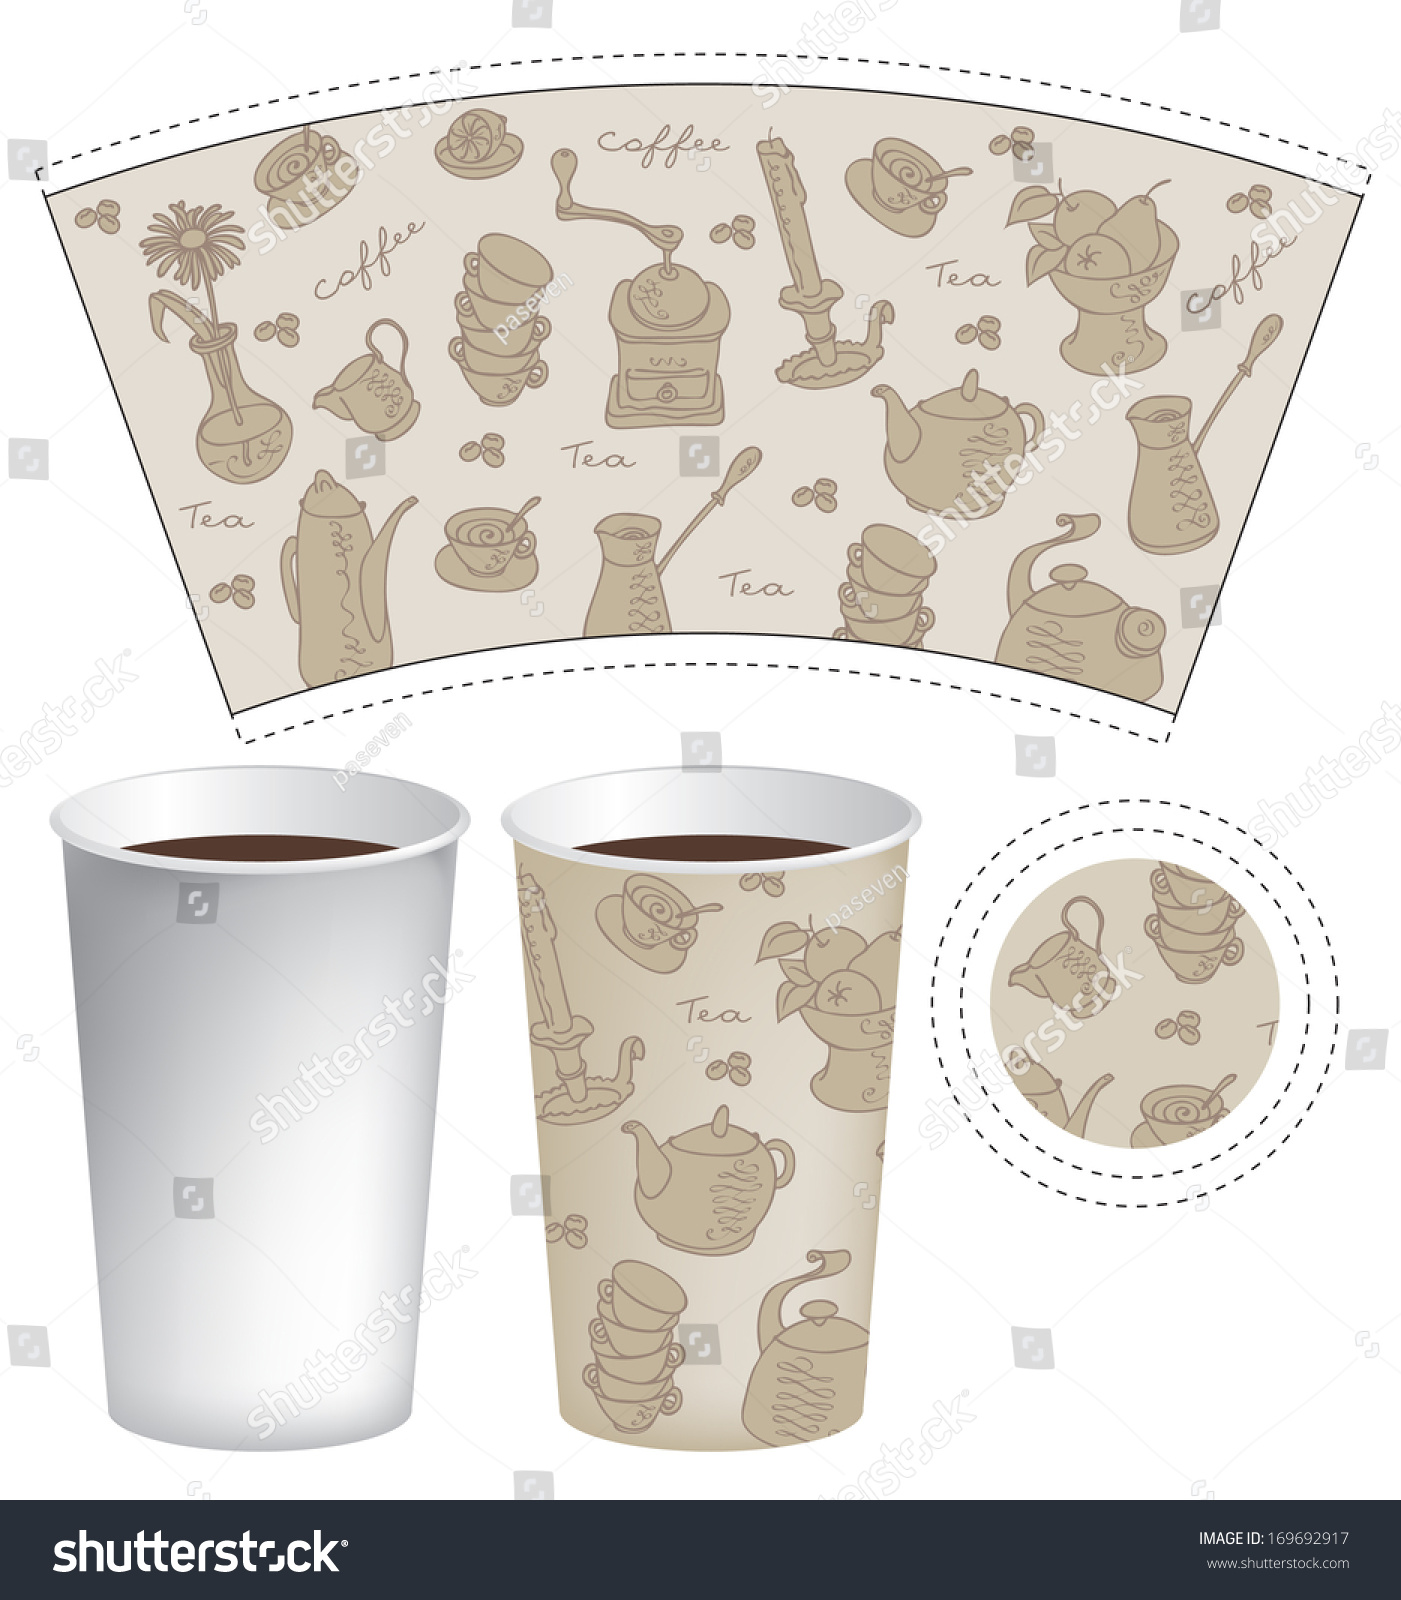 Paper Coffee Mug Template paper cup stock photos, images, & pictures ...